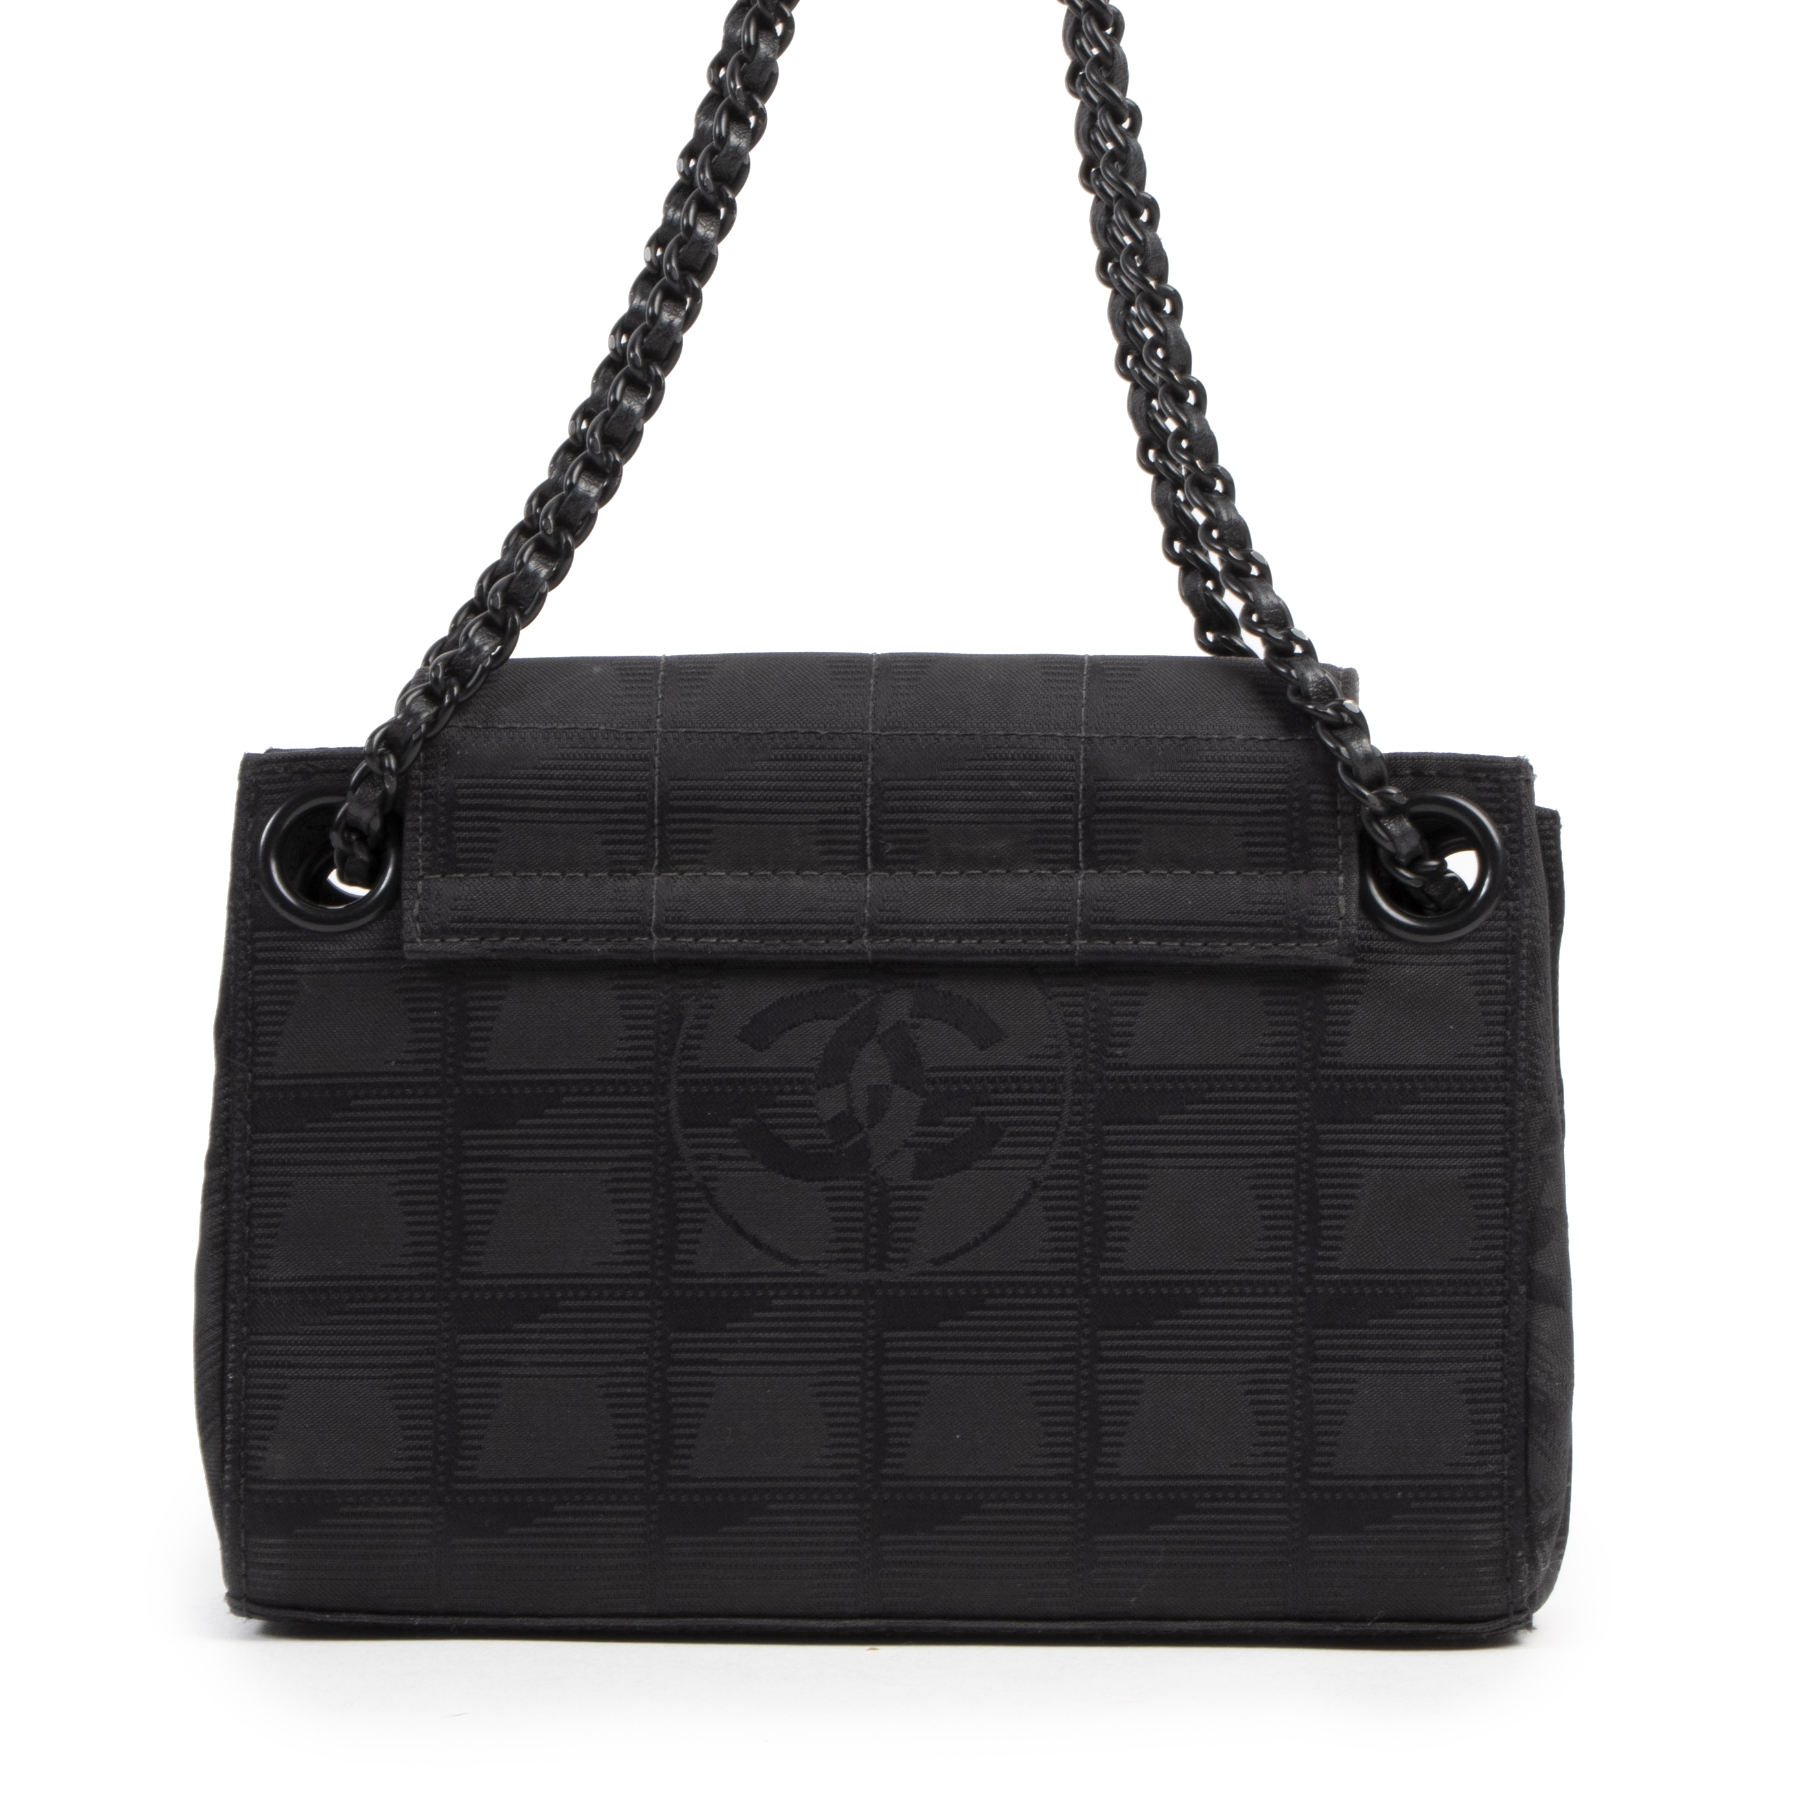 Available for the best price this exclusive authentic vintage Chanel Black Nylon CC Mini Bag